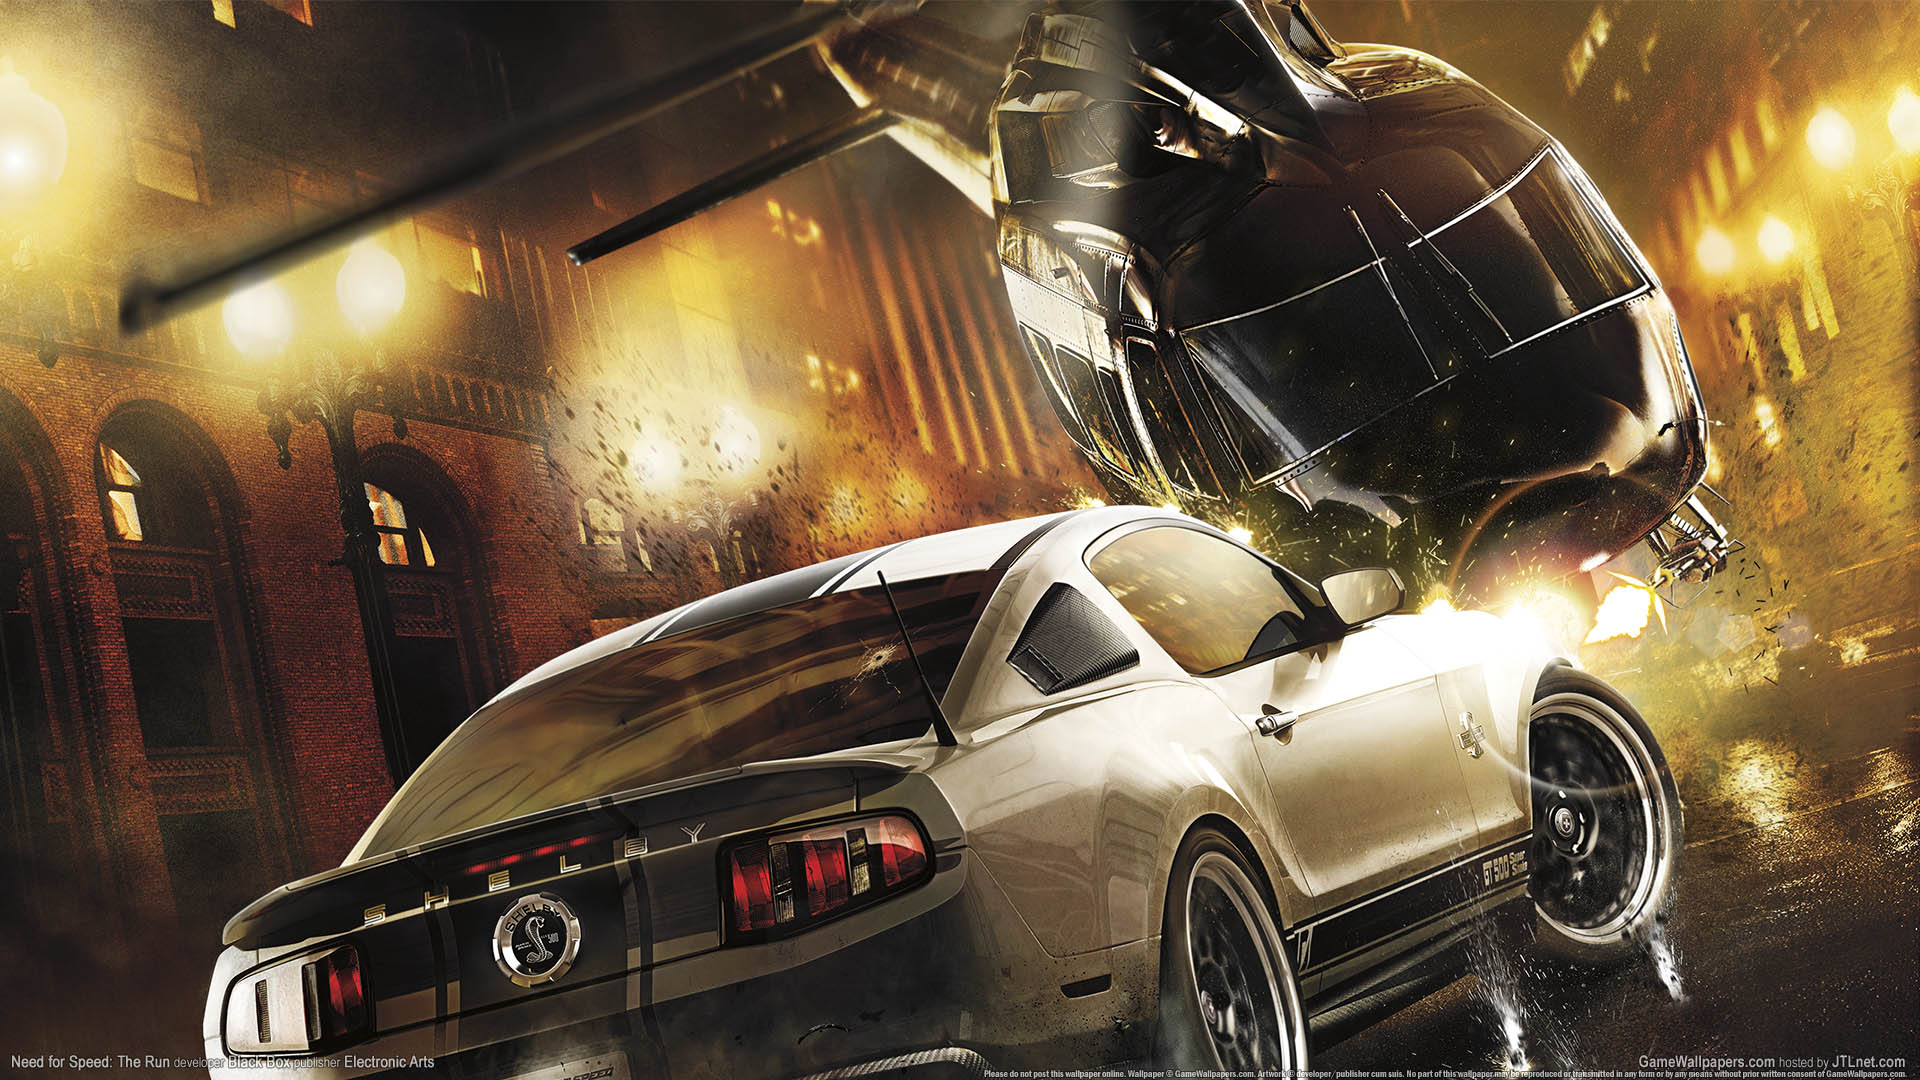 Need for Speed: The Run Hintergrundbild 01 1920x1080